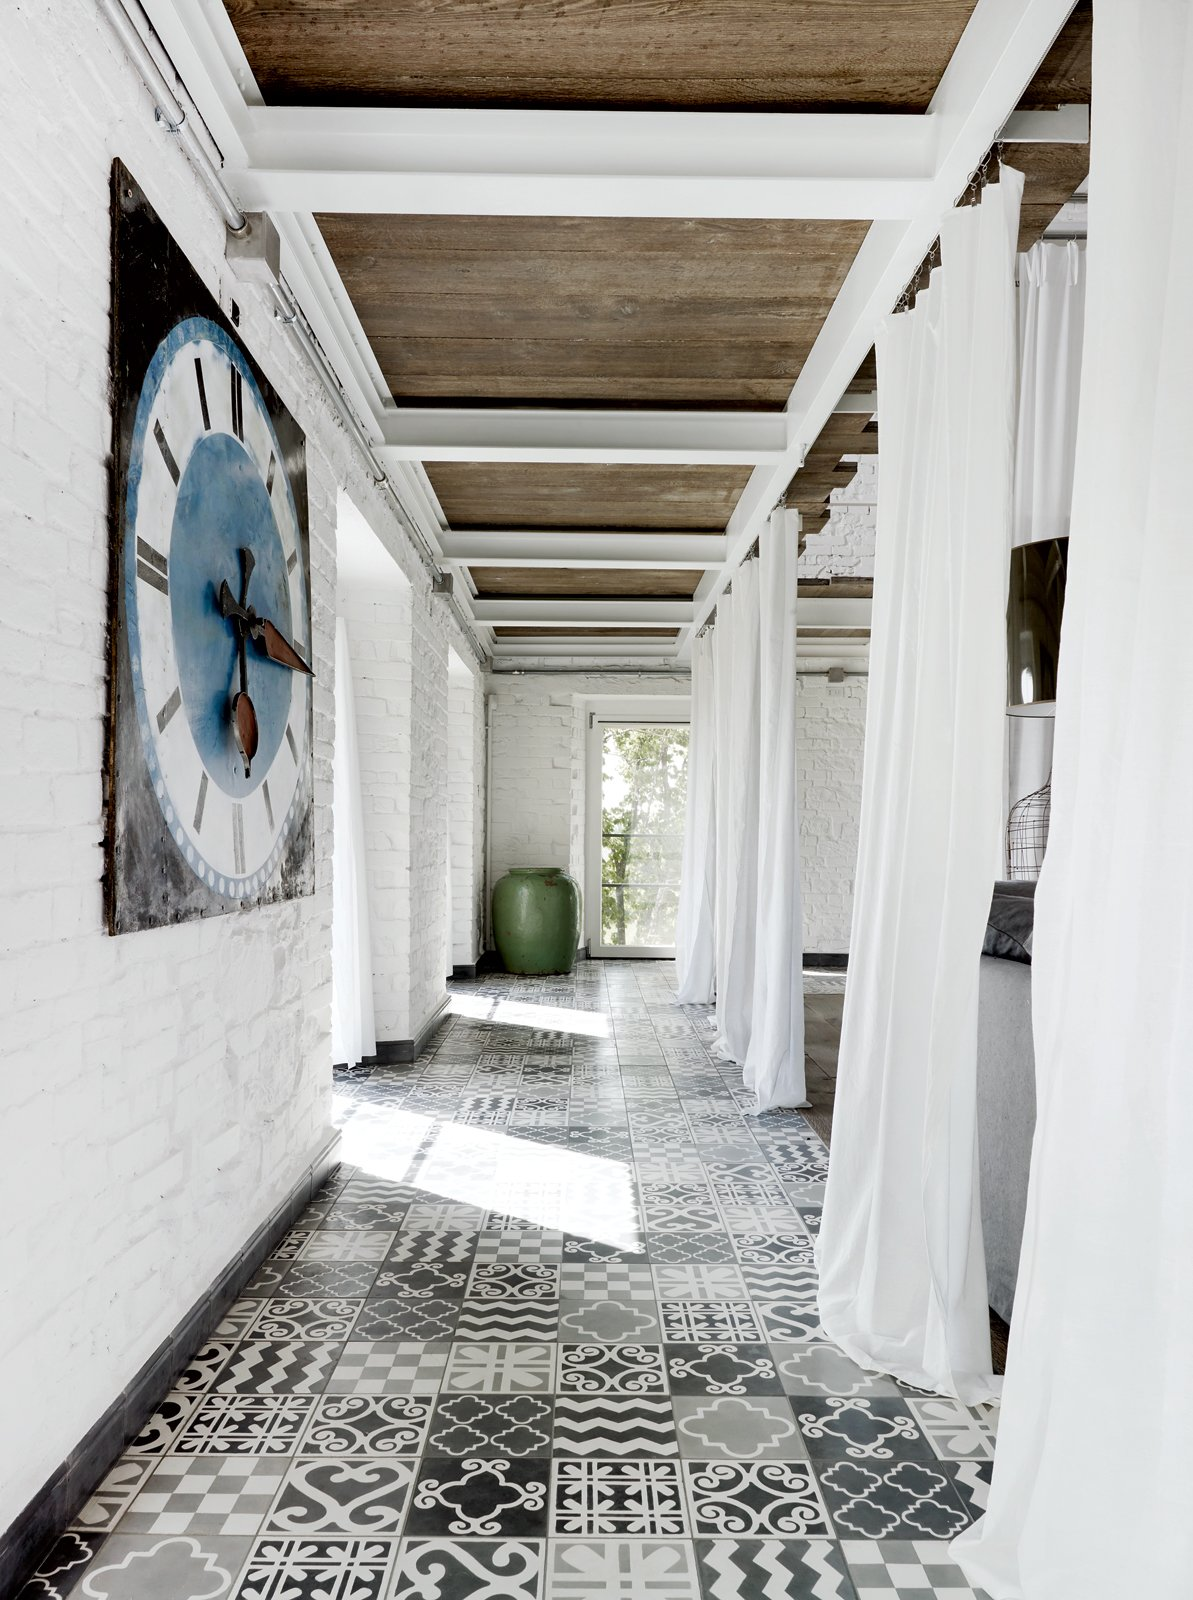 Hallway and Ceramic Tile Floor A carpet of custom tile created by Navone punctuates a corridor on the first floor.  Photo 4 of 11 in Paola Navone's Industrial Style Renovation in Italy